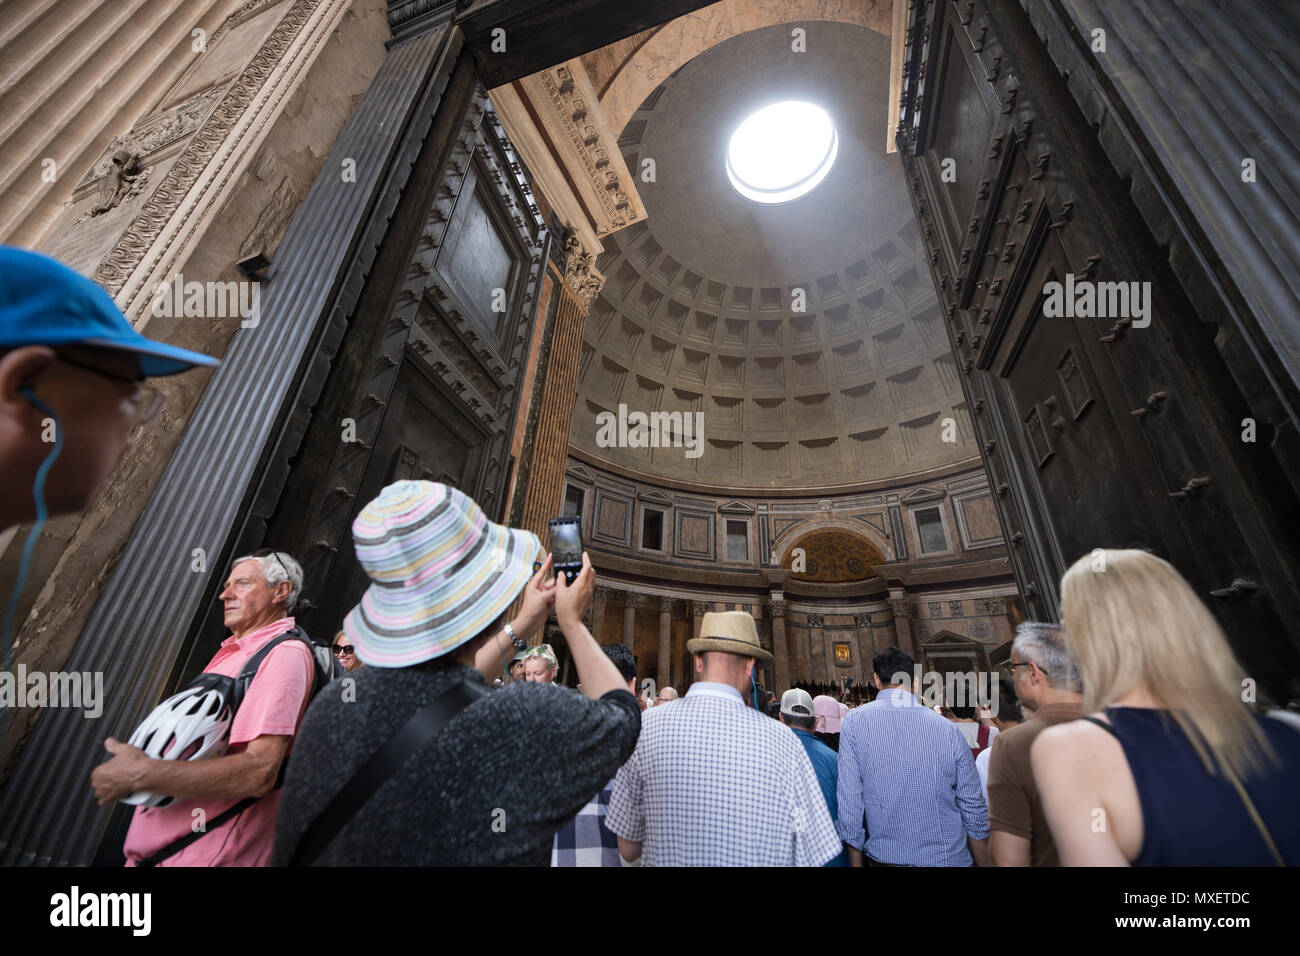 Rome Pantheon interior, light true the hole on dome, tourists visiting - Stock Image